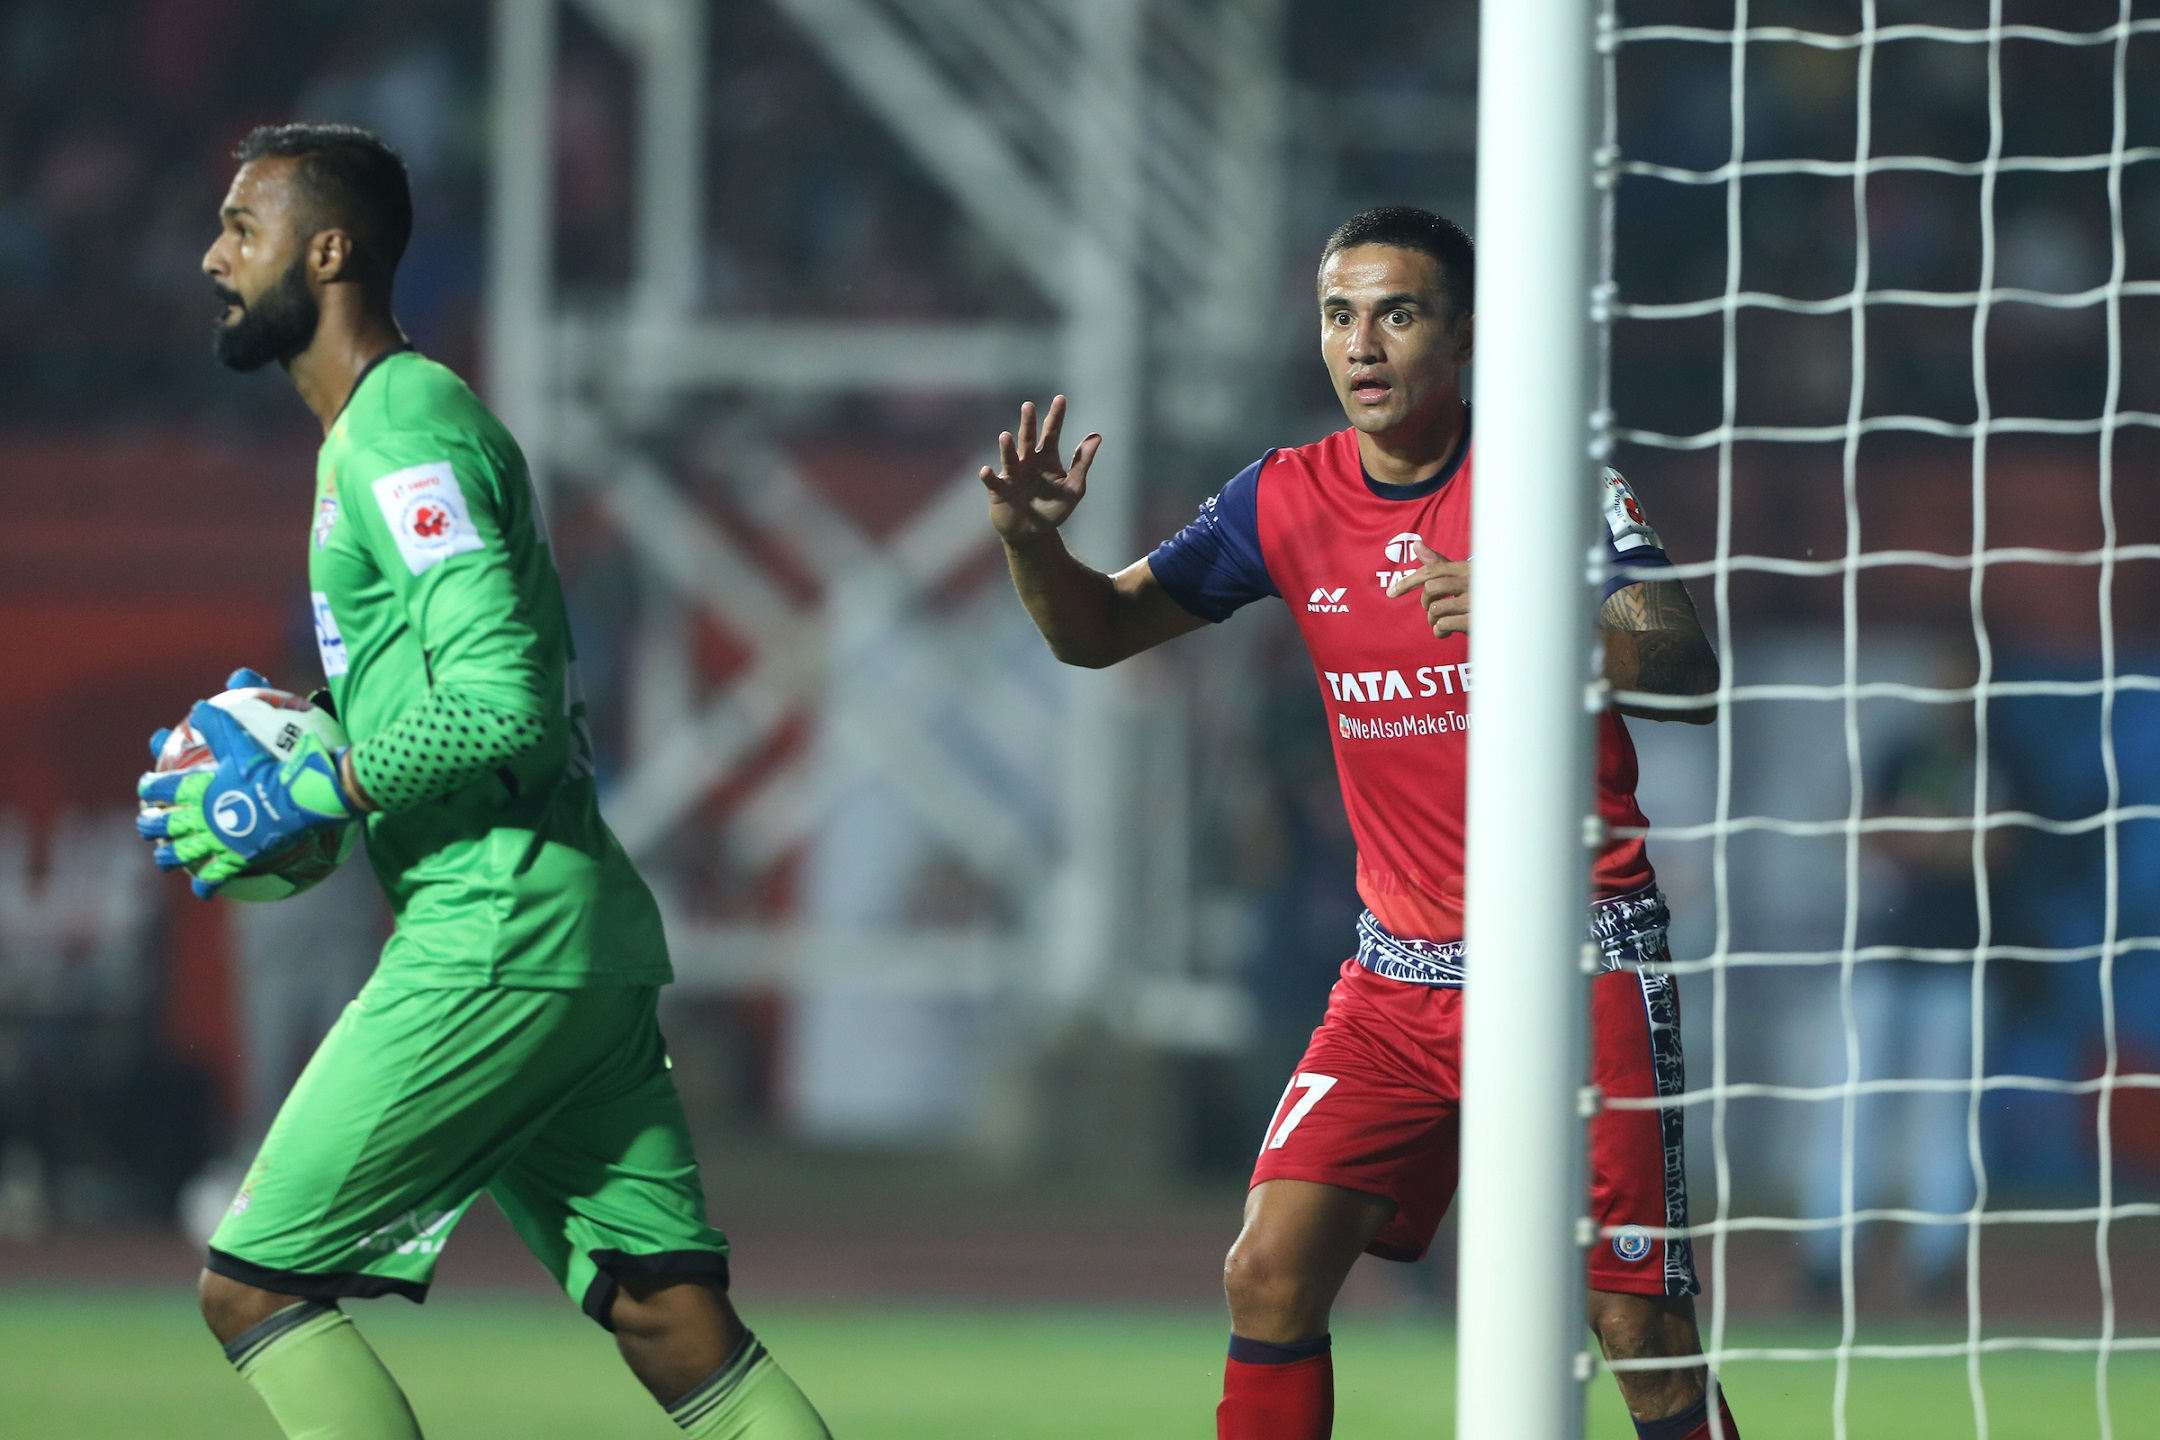 Tim Cahill of Jamshedpur FC reacts on missing the goal against ATK in Hero ISL